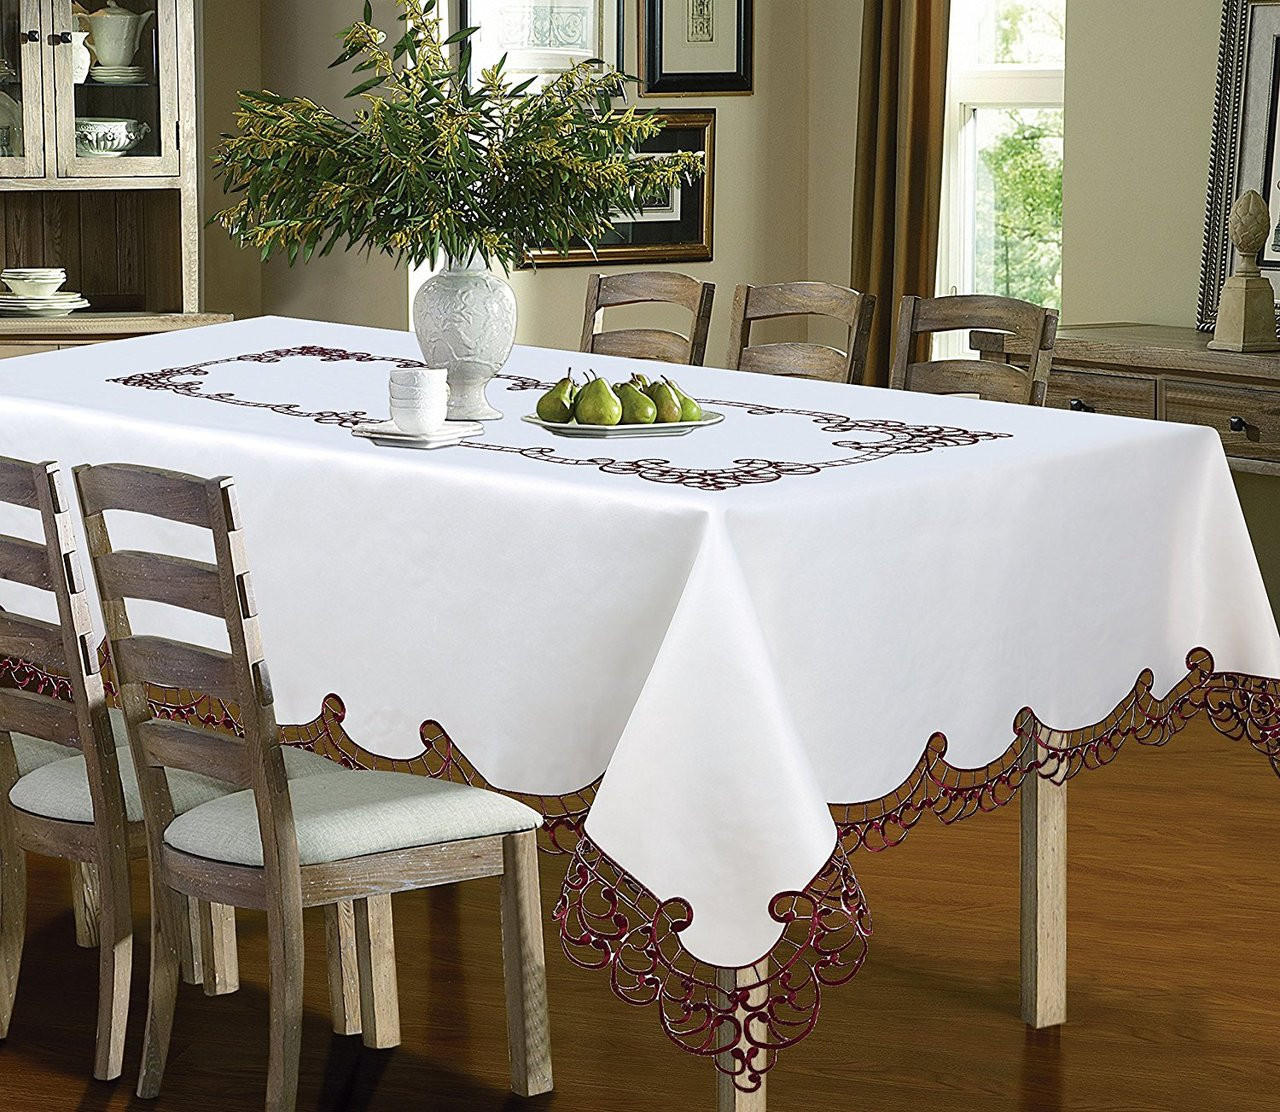 Wholesale Beddings & Holland Luxury Embroidered and Hand Cutwork Table cloth Top Dinner Kitchen Table Cover